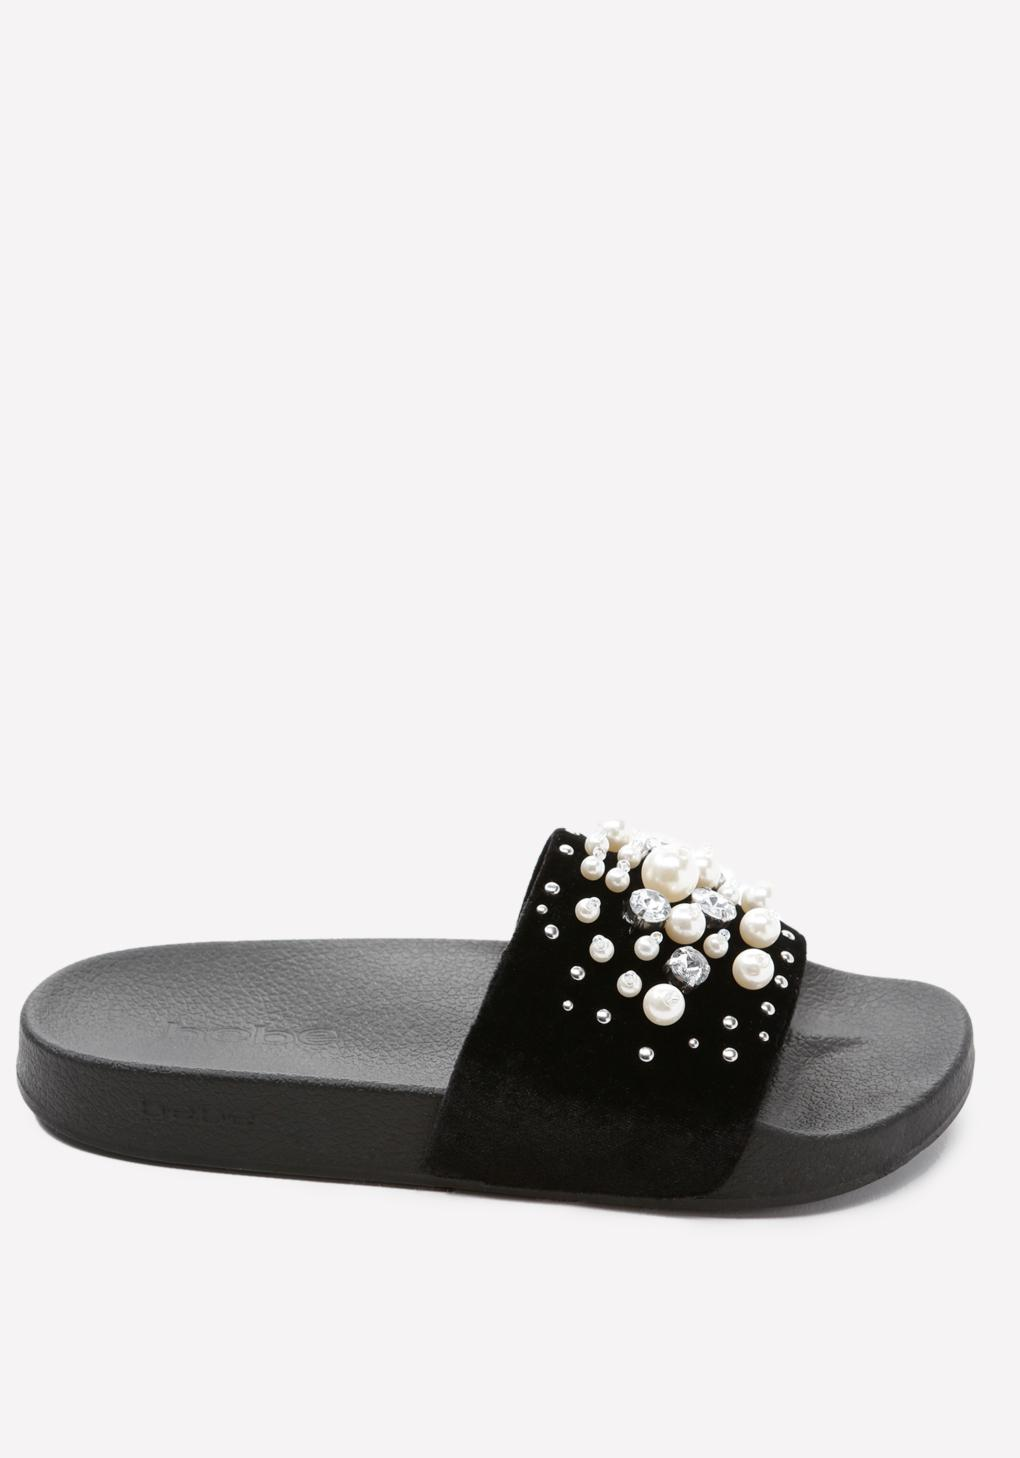 More Designers For Women Slides Shoes